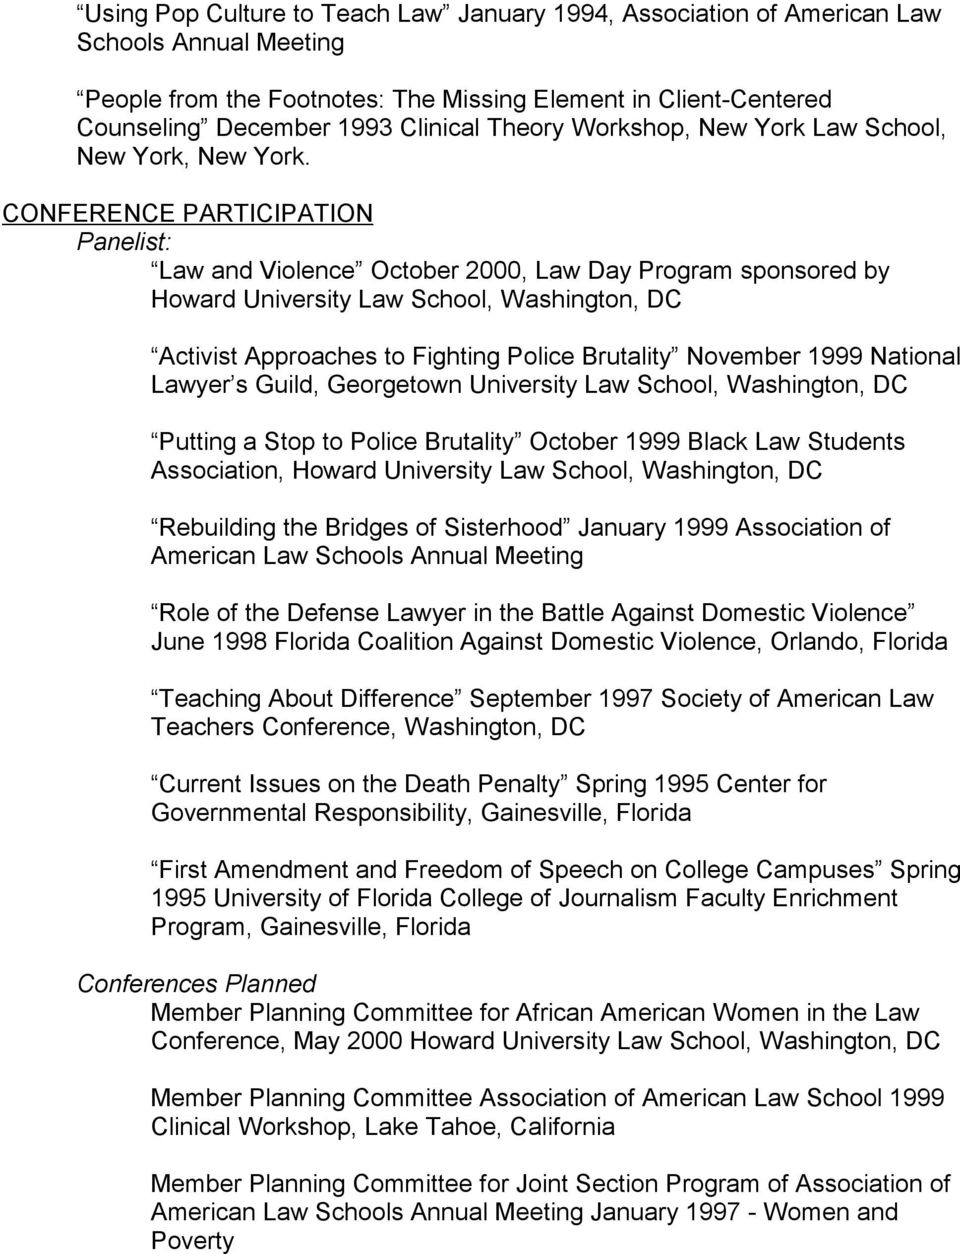 CONFERENCE PARTICIPATION Panelist: Law and Violence October 2000, Law Day Program sponsored by Howard University Law School, Washington, DC Activist Approaches to Fighting Police Brutality November